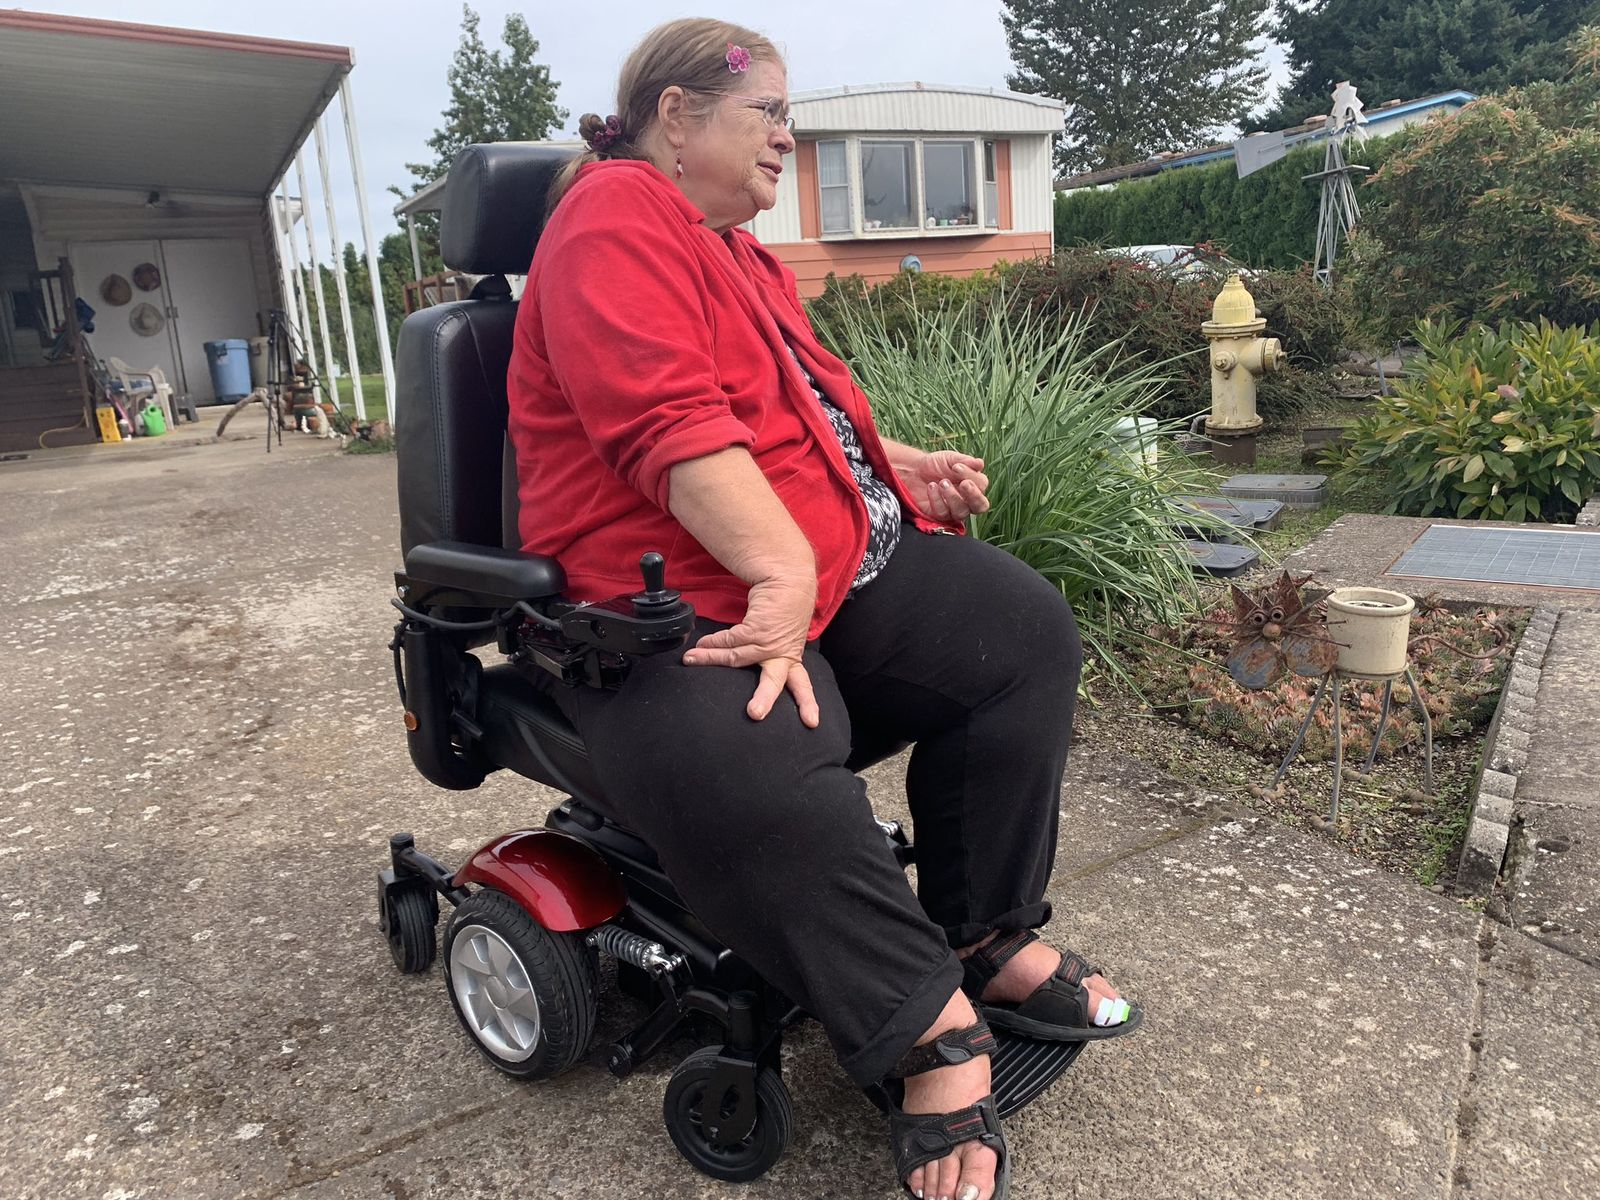 An Oregon woman whose motorized wheelchair was stolen last week is moving again with the help of a new chair. (SBG)